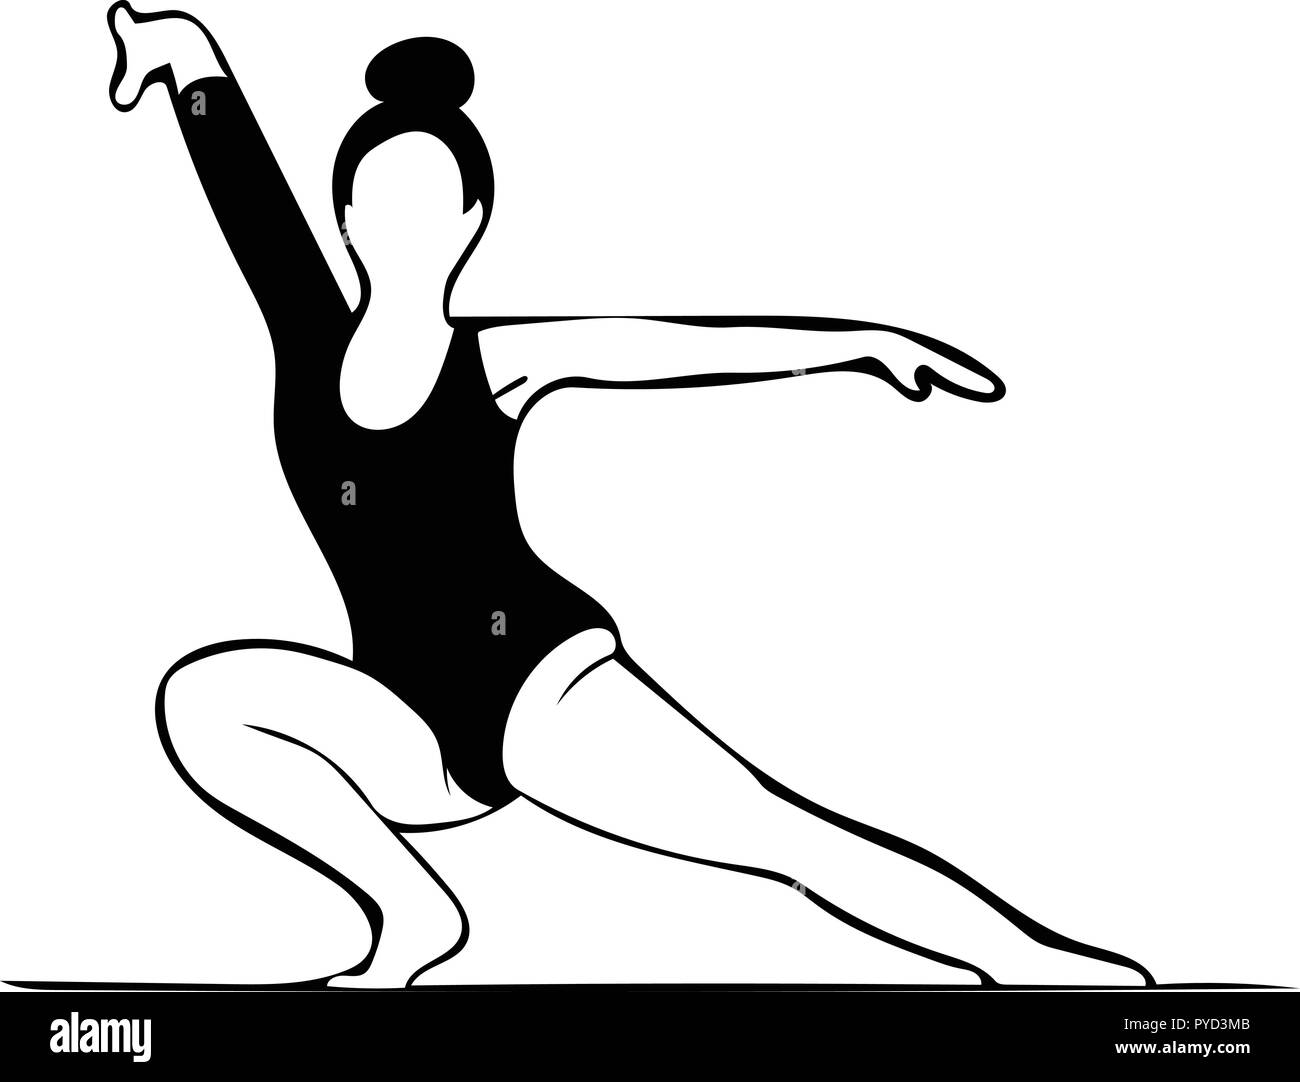 Monochrome vector graphic of gymnast in pose with leg extended to size. - Stock Vector